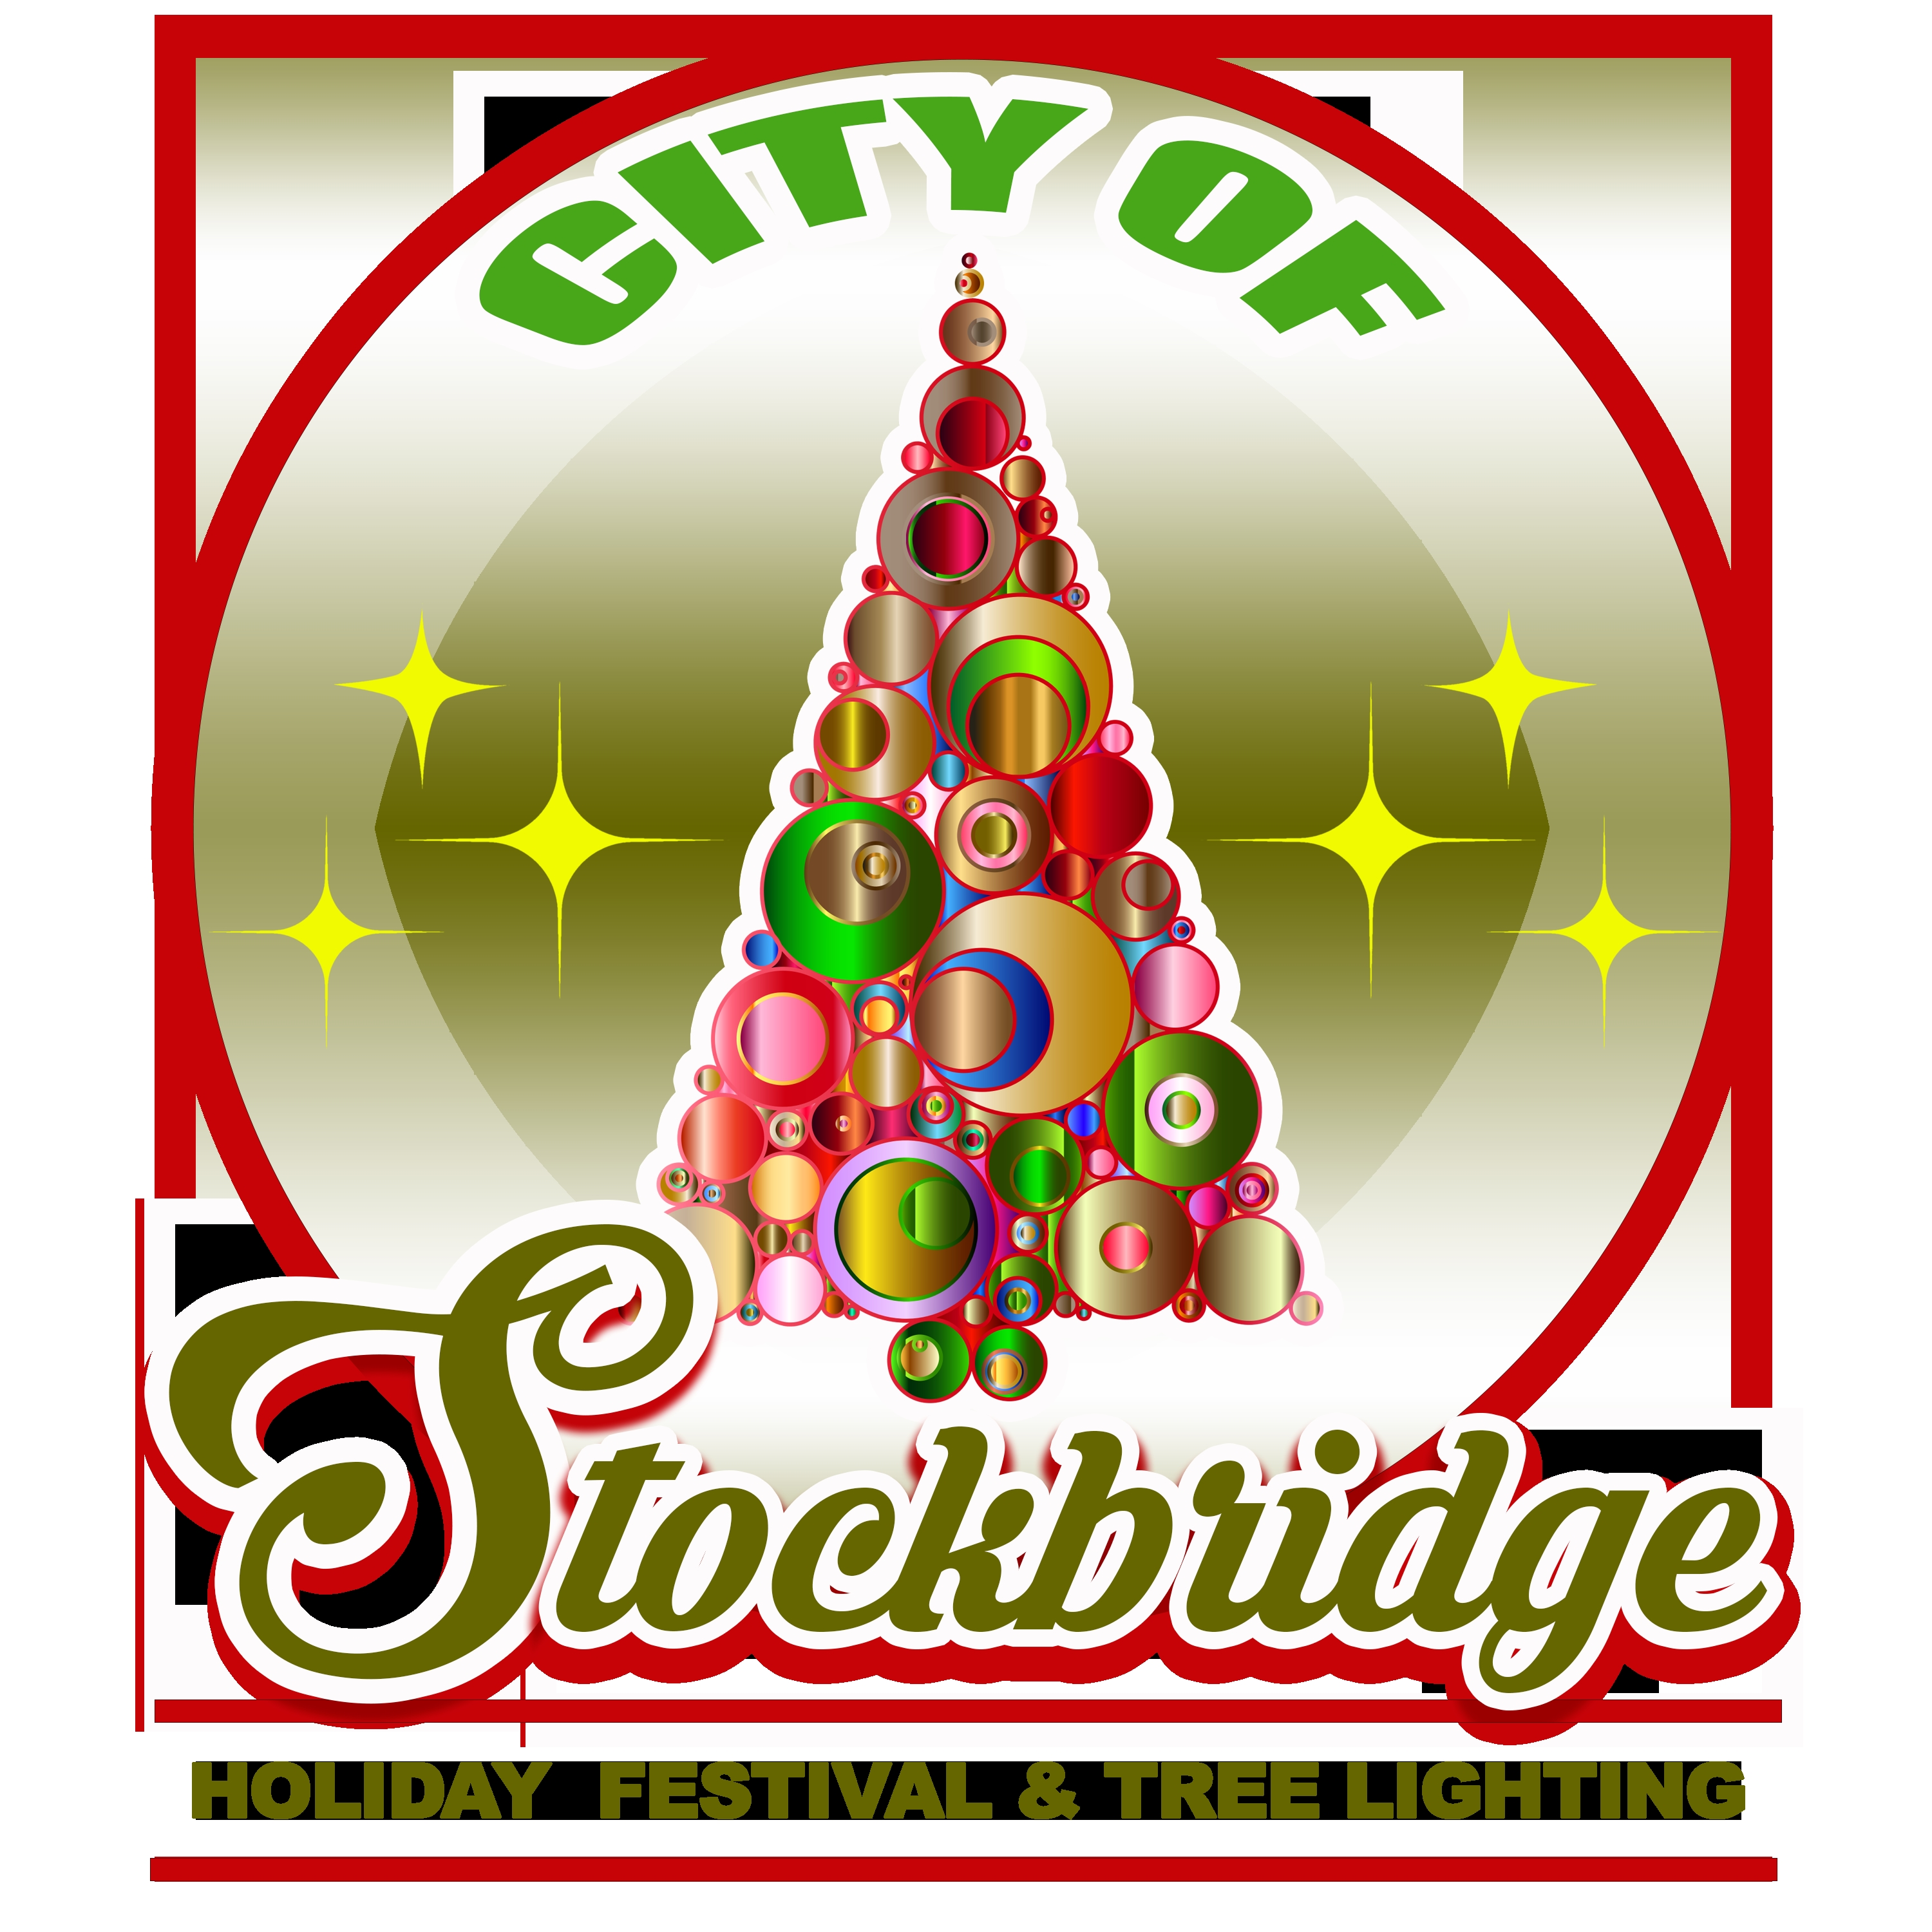 2020 Stockbridge Holiday Festival & Tree Lighting